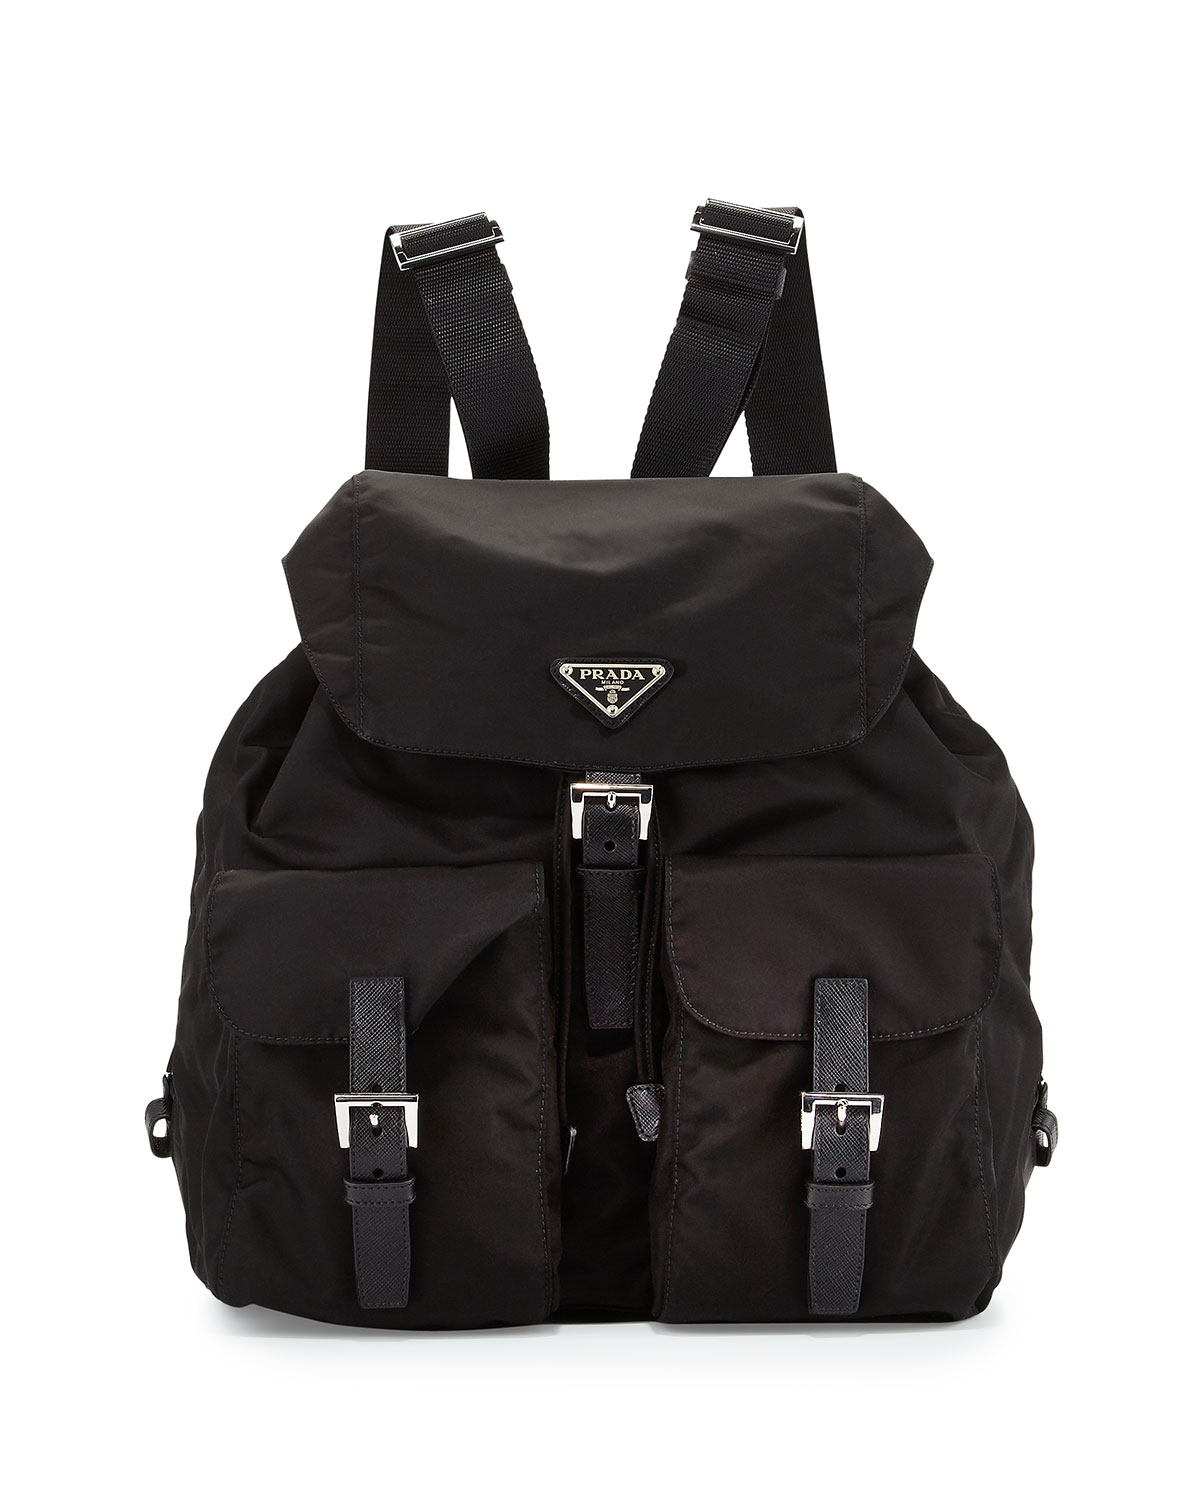 a3b0eeb7053d Prada Vela Large Two-Pocket Backpack